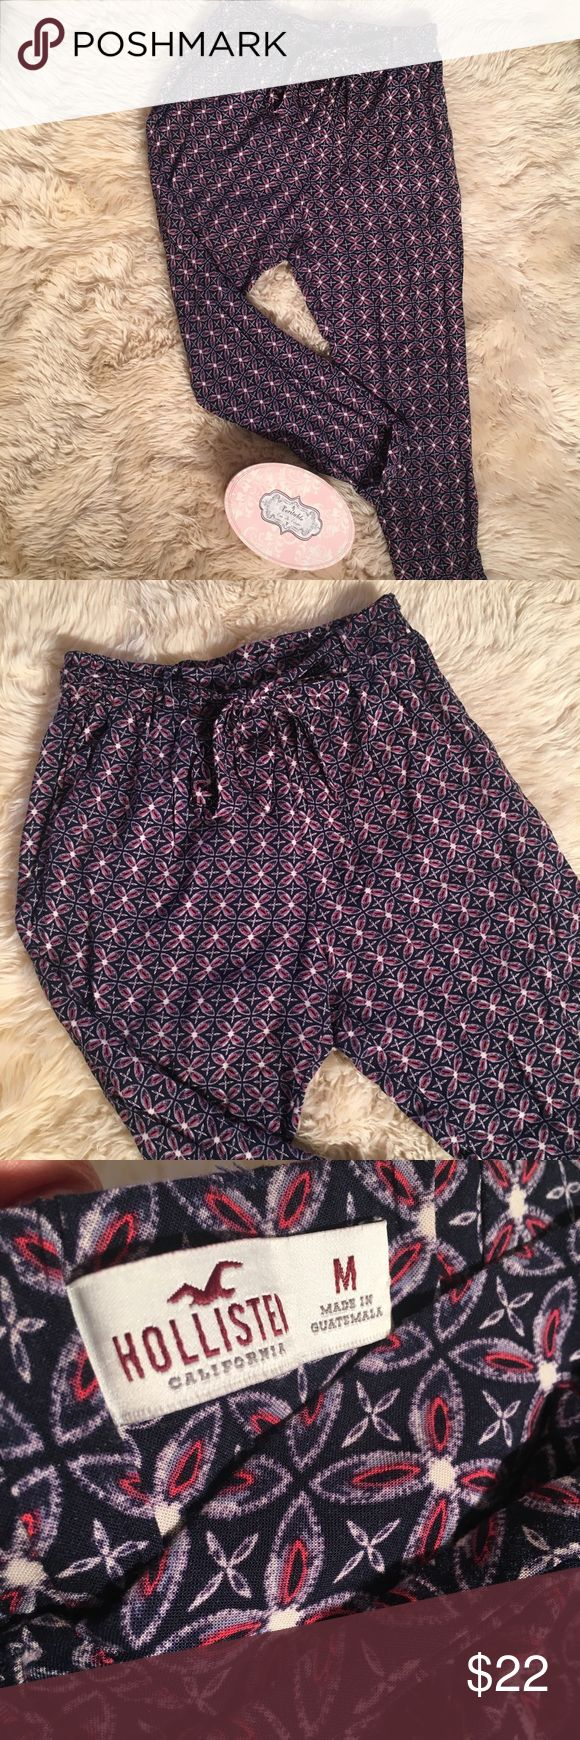 Hollister printed pants Very soft and comfortable pants from Hollister. Worn only twice. Hollister Pants Trousers